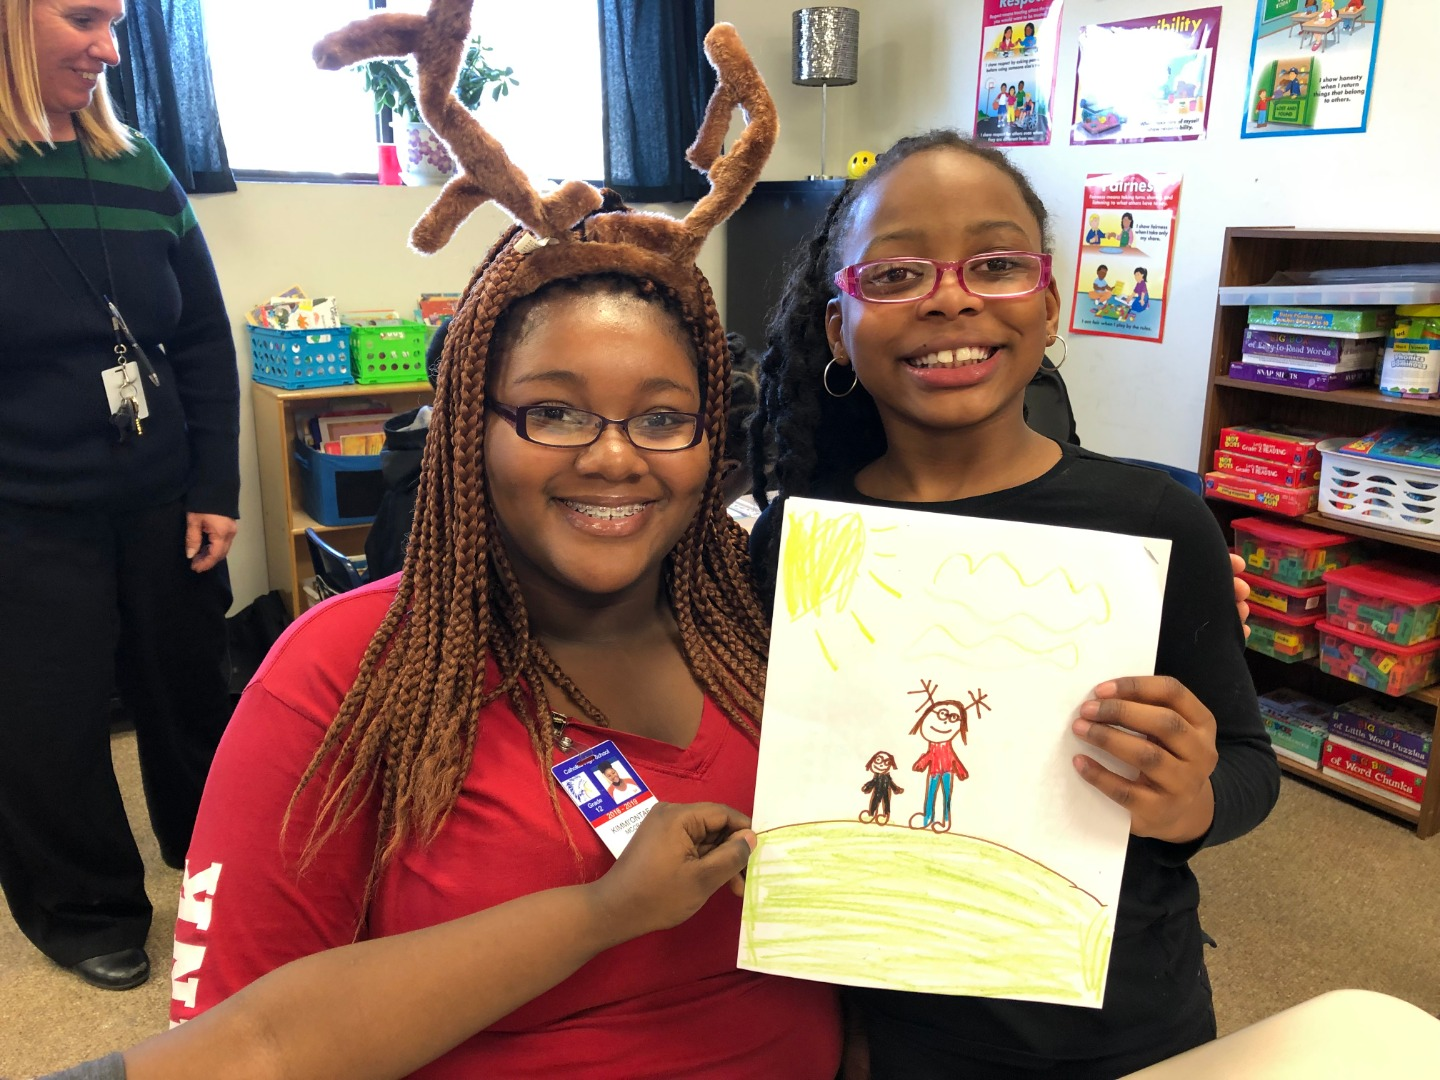 Elf Kimmi McCray spreads holiday cheer.